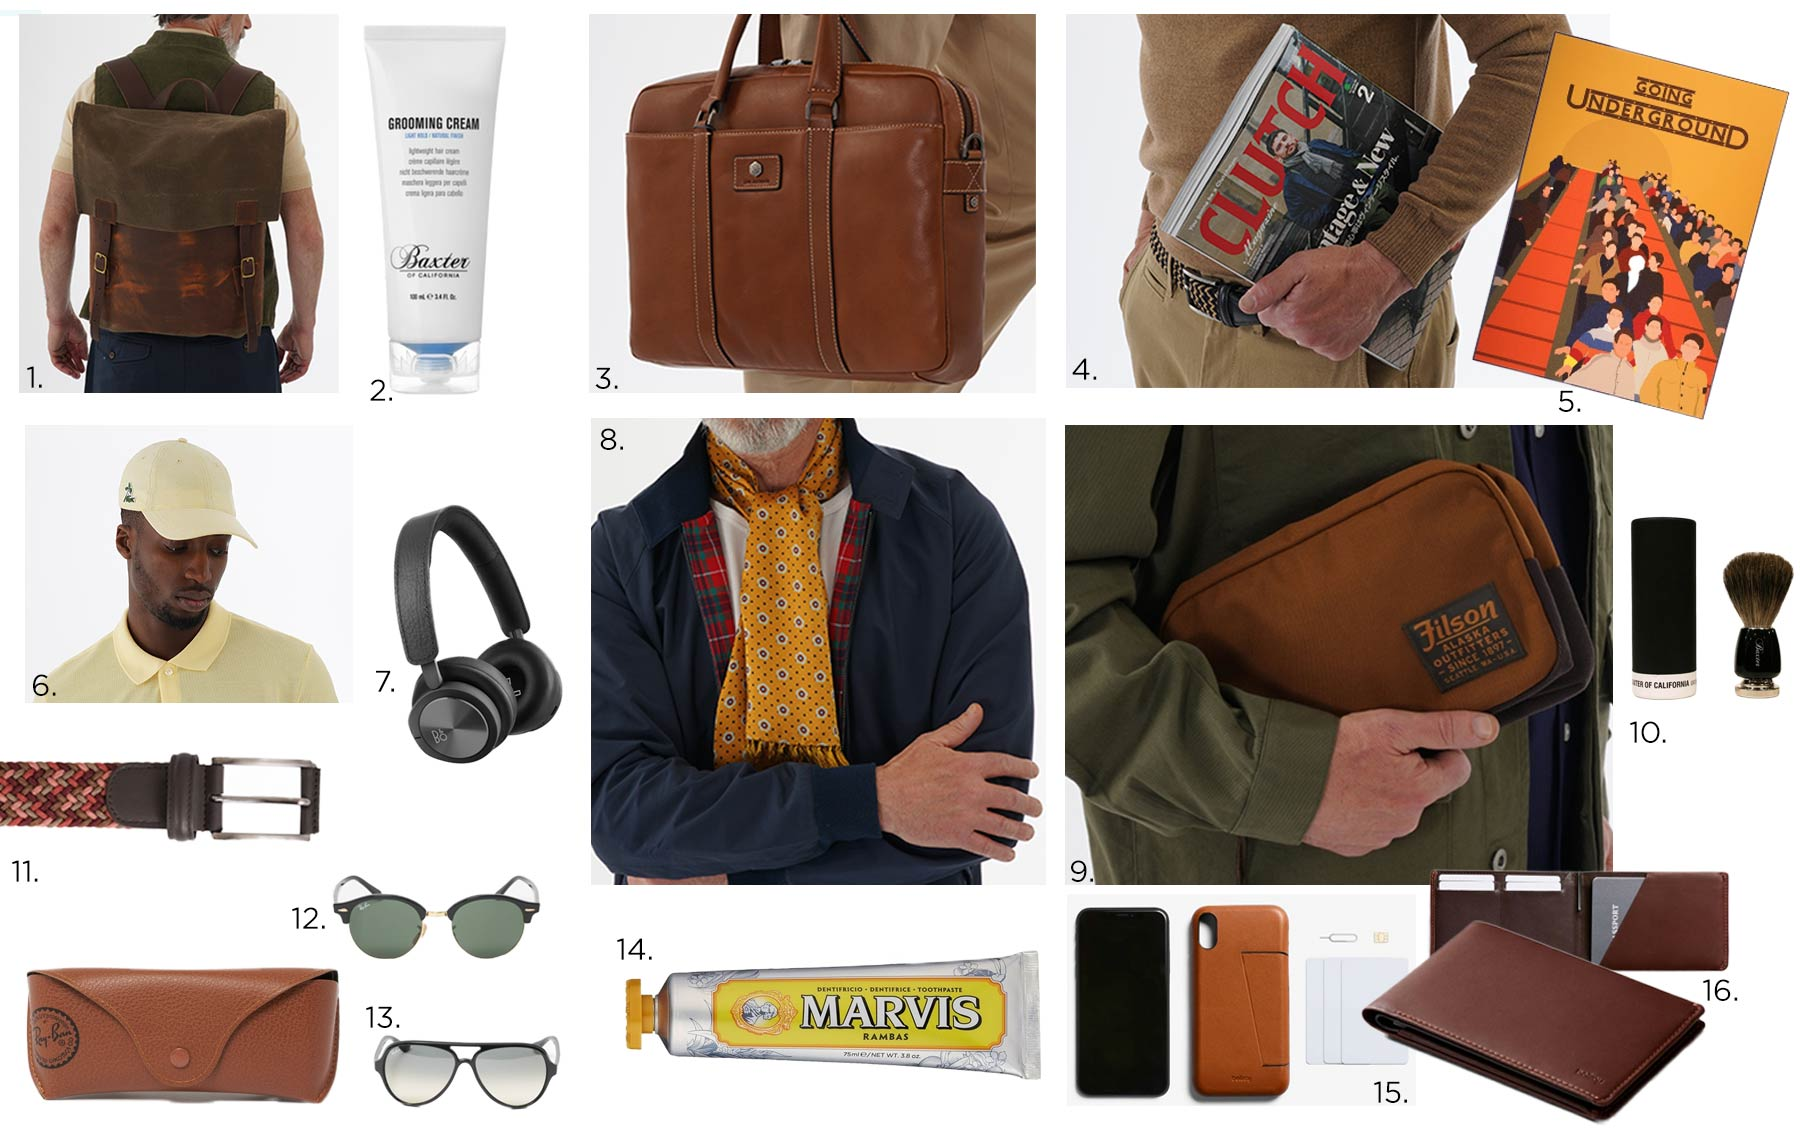 The Fathers Day Gift Guide by Stuarts London